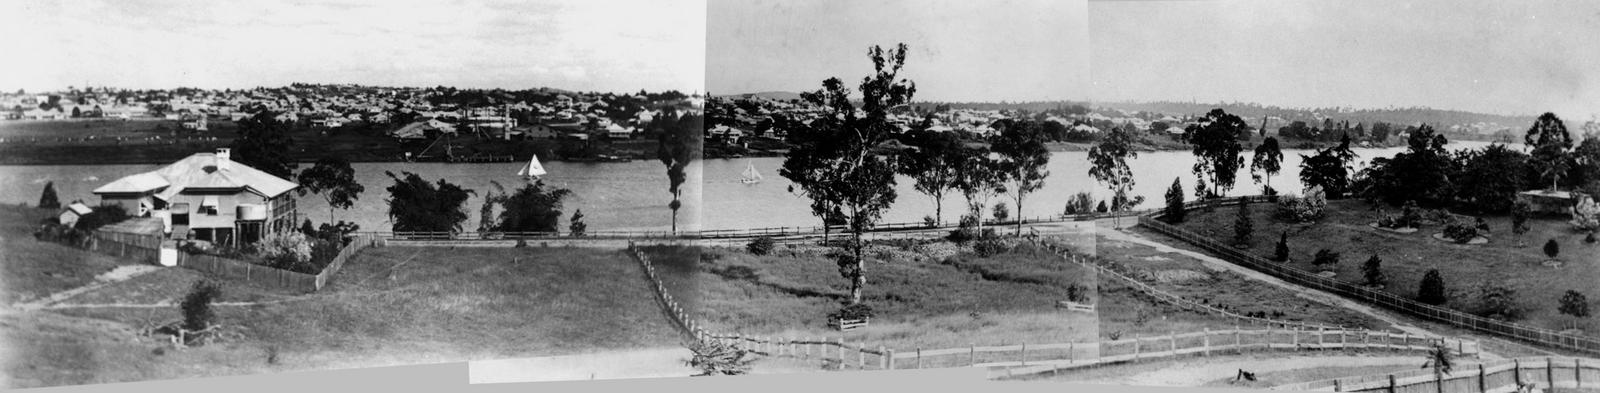 Panorama from Dunmore Terrace, 1910. (State Library of Queensland, Negatives 183958, 183967 and 183958 and 183967)